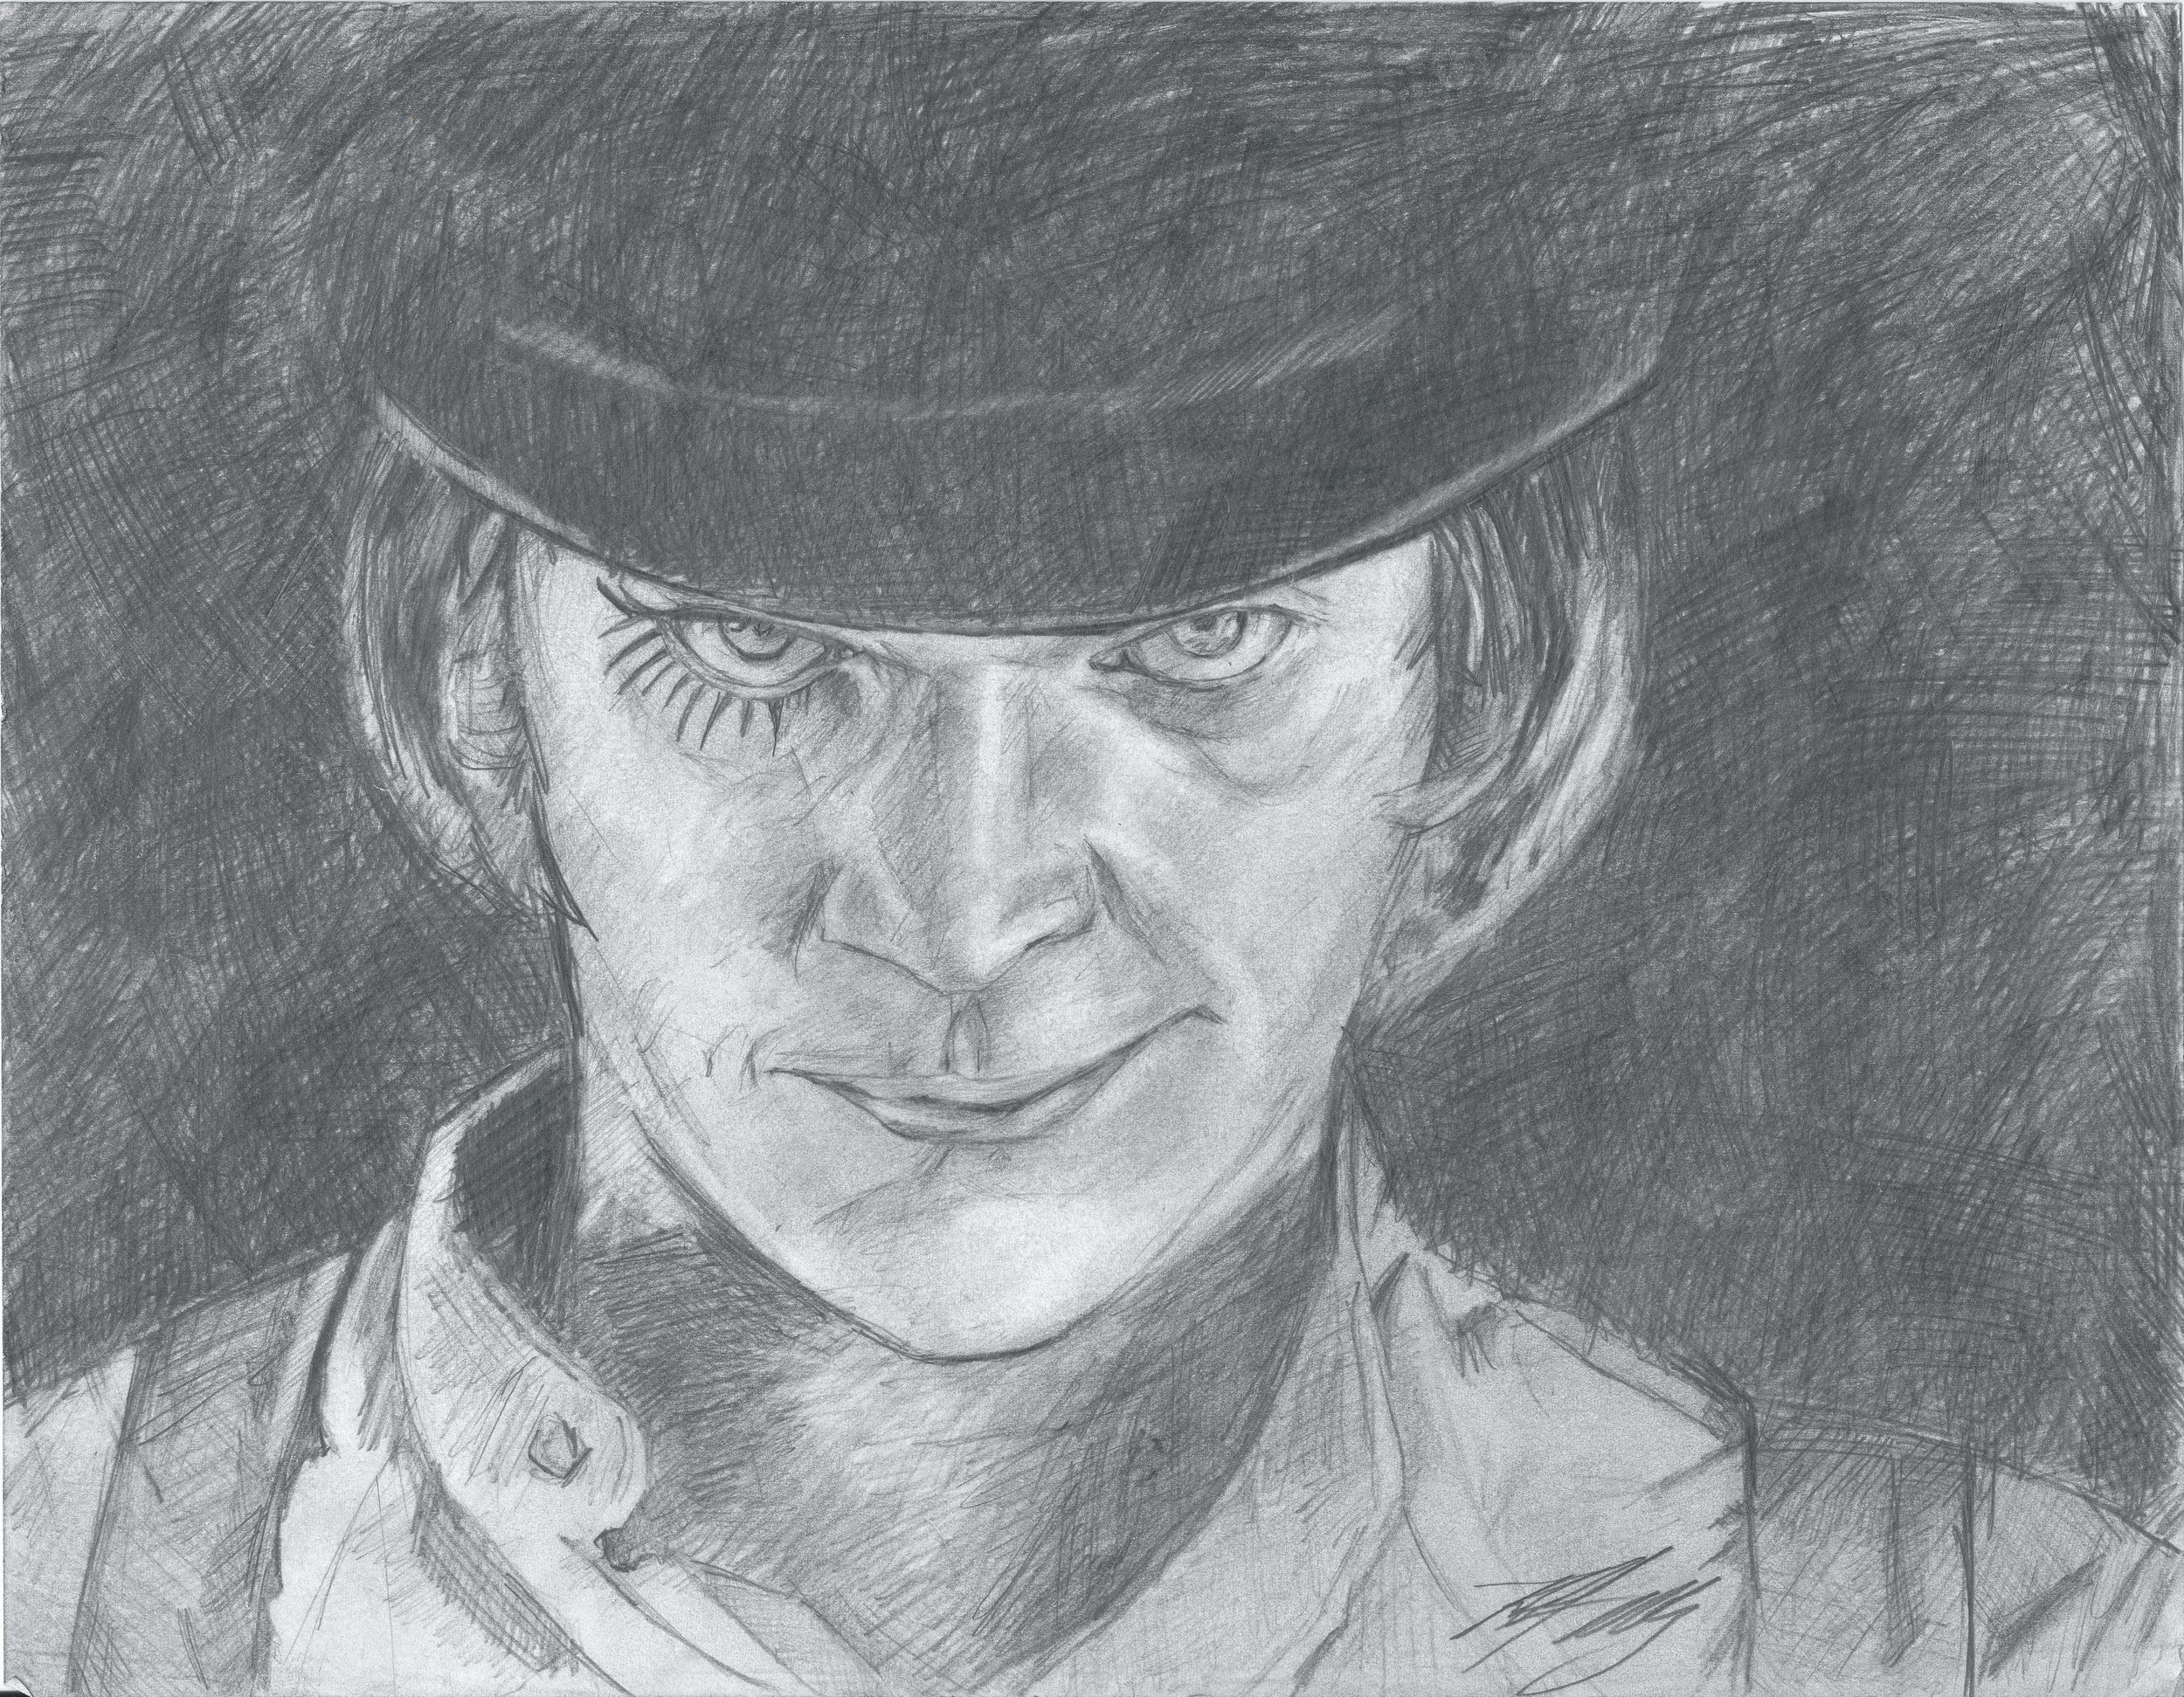 Alexander Delarge (A Clockwork Orange Sketch - Imgur.jpg